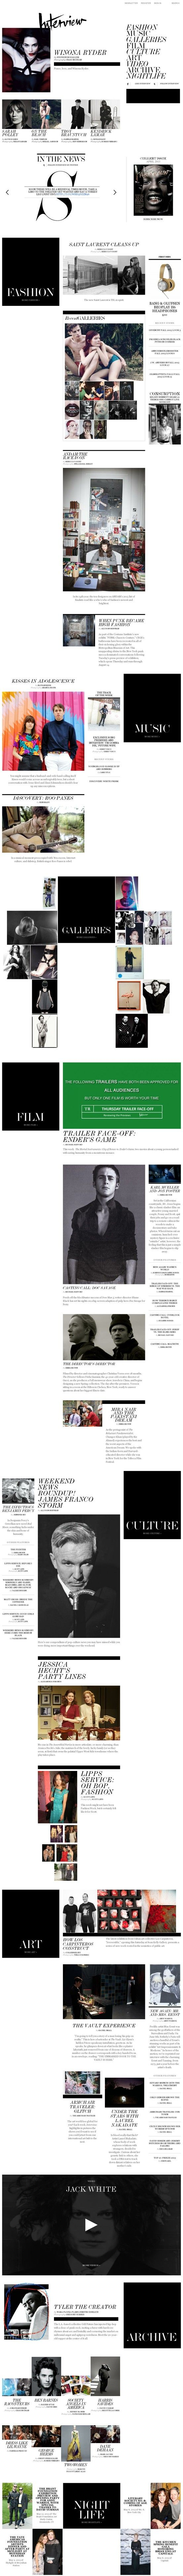 Interview Magazine | Web Design